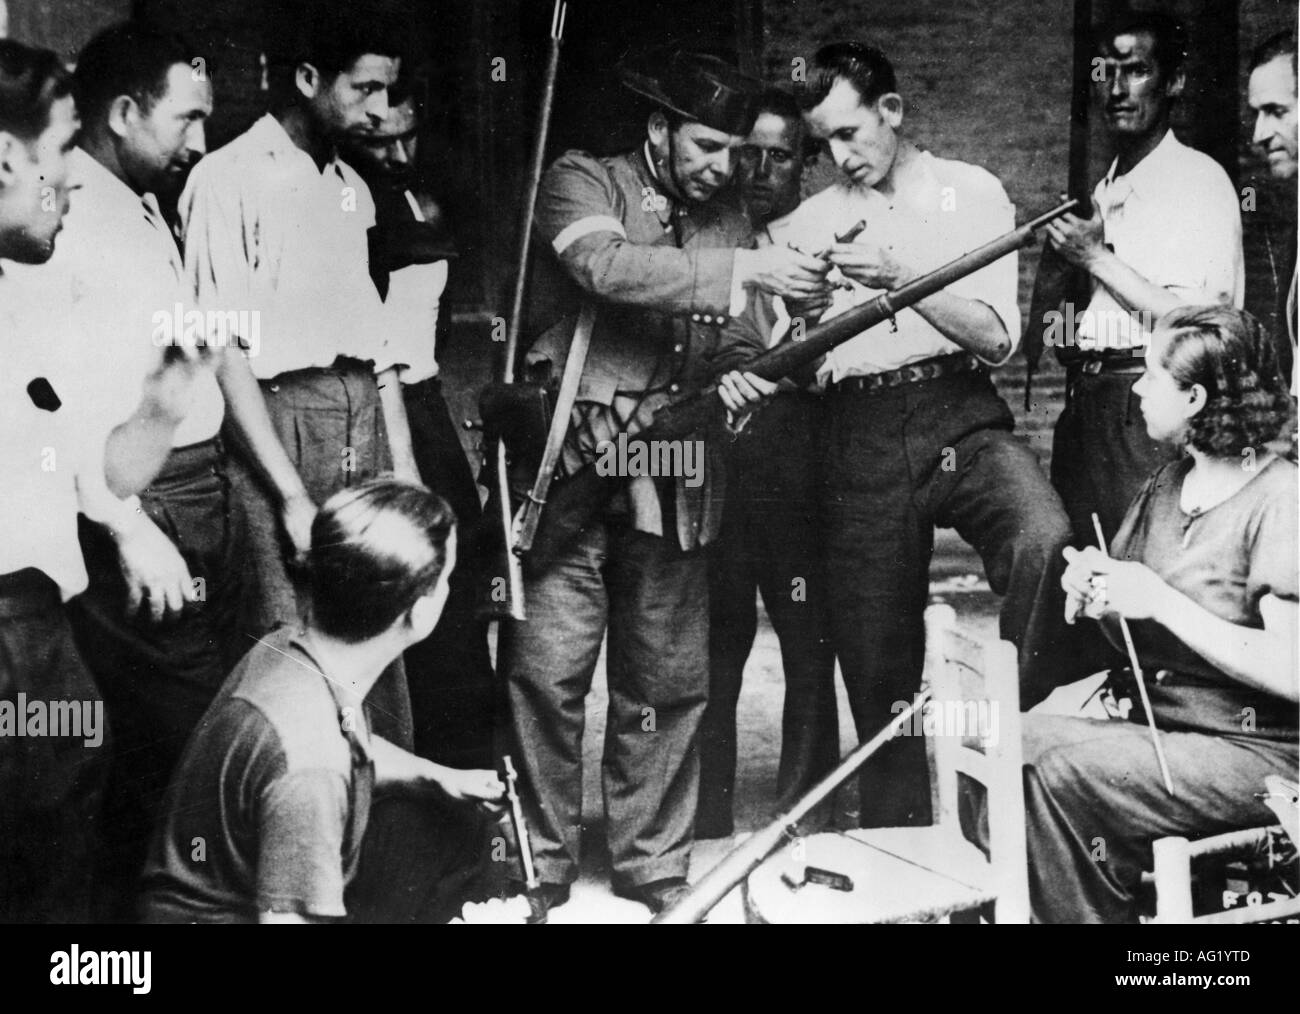 Geography travel spain civil war 1936 1939 member of the guardia civil gives rifle instruction for the militia 1936 poli